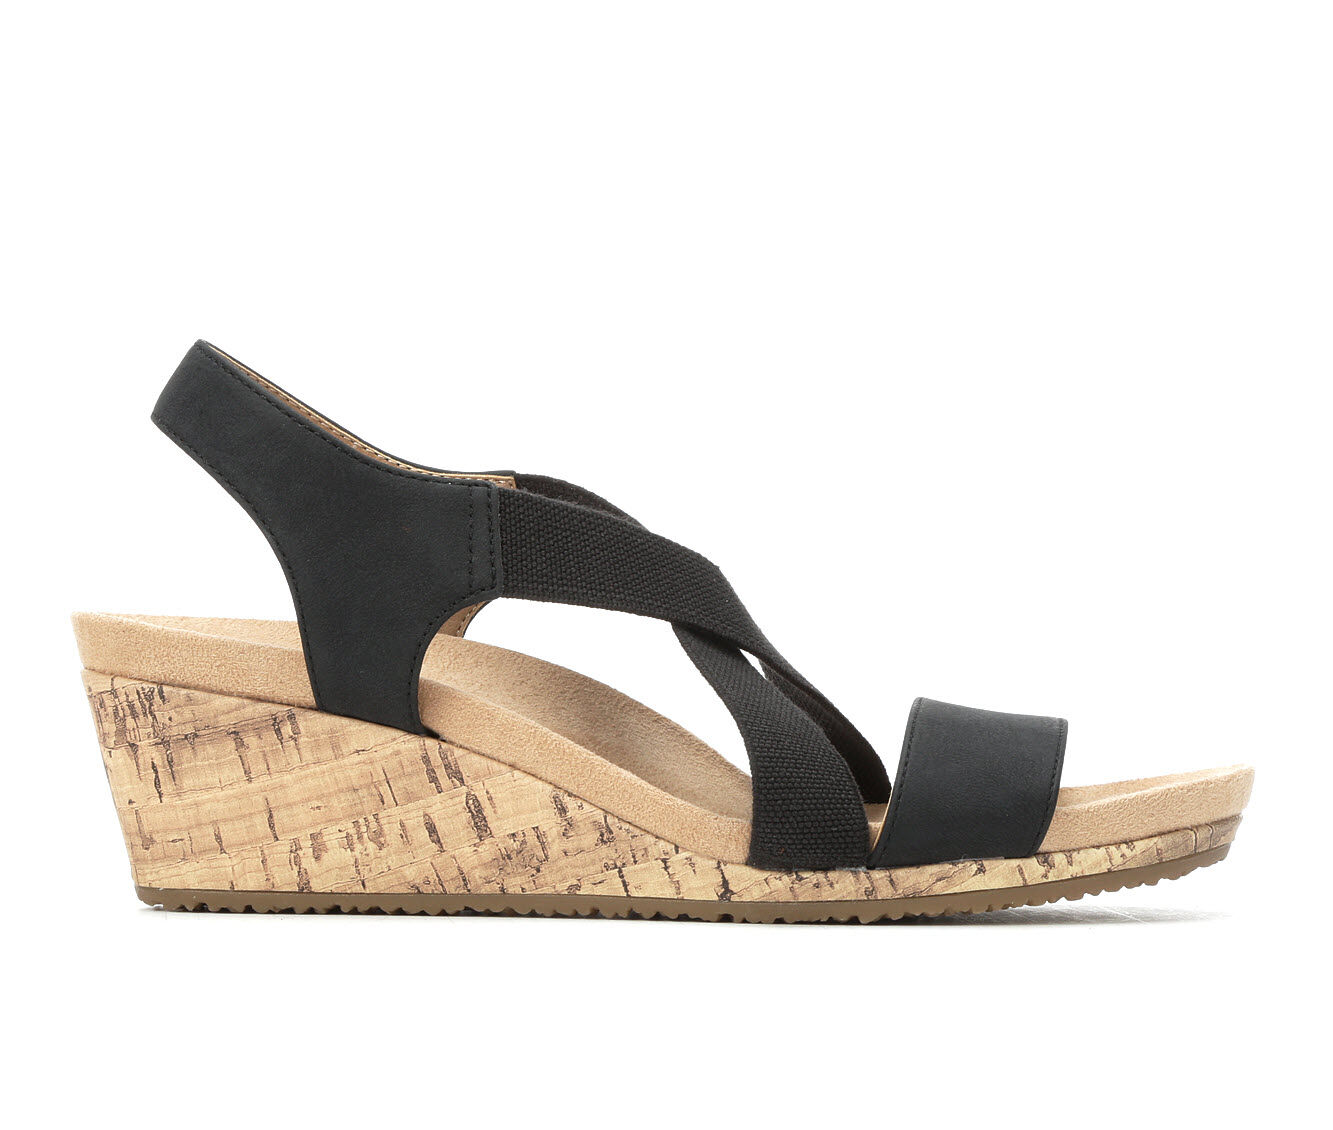 Weekly Specials Women's LifeStride Mexico Wedges Black